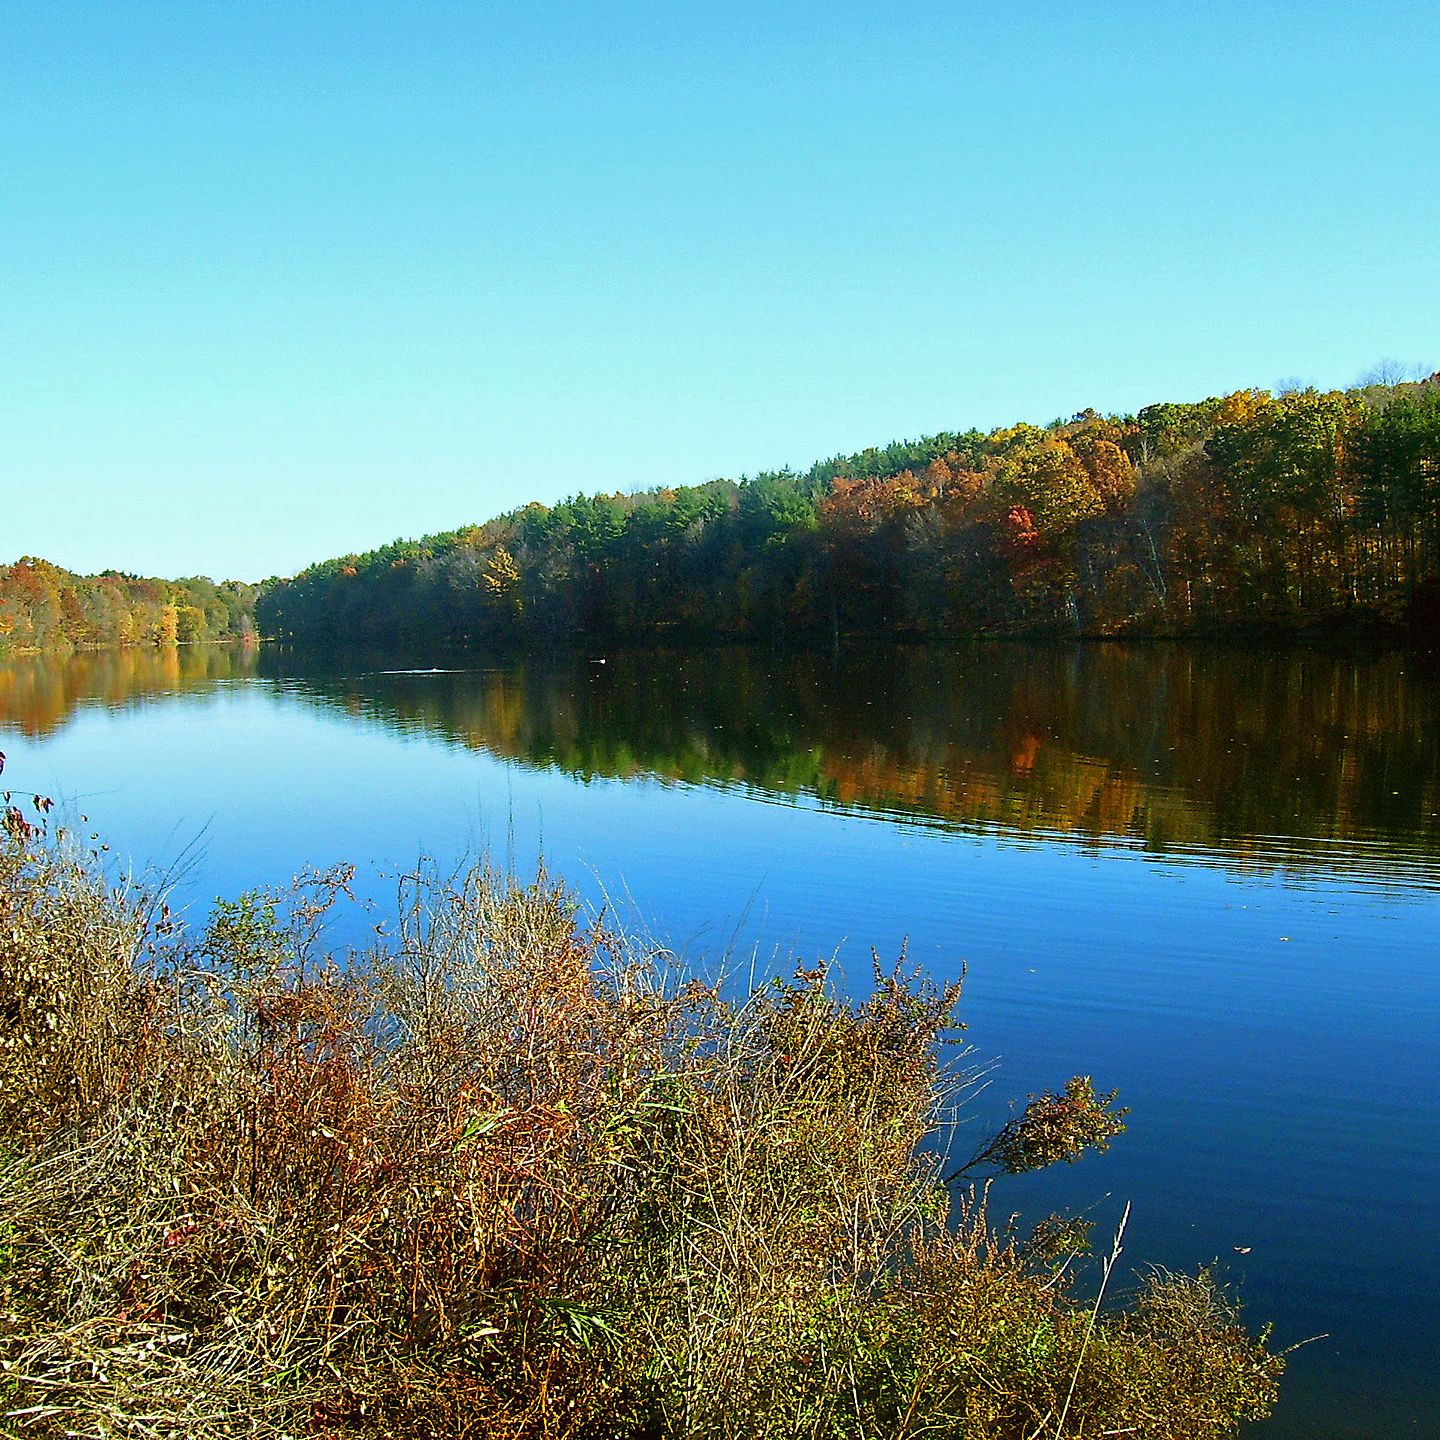 Browns Pond, a 0.3 square mile pond that is one of the City of Newburgh's Drinking Water Reservoirs h